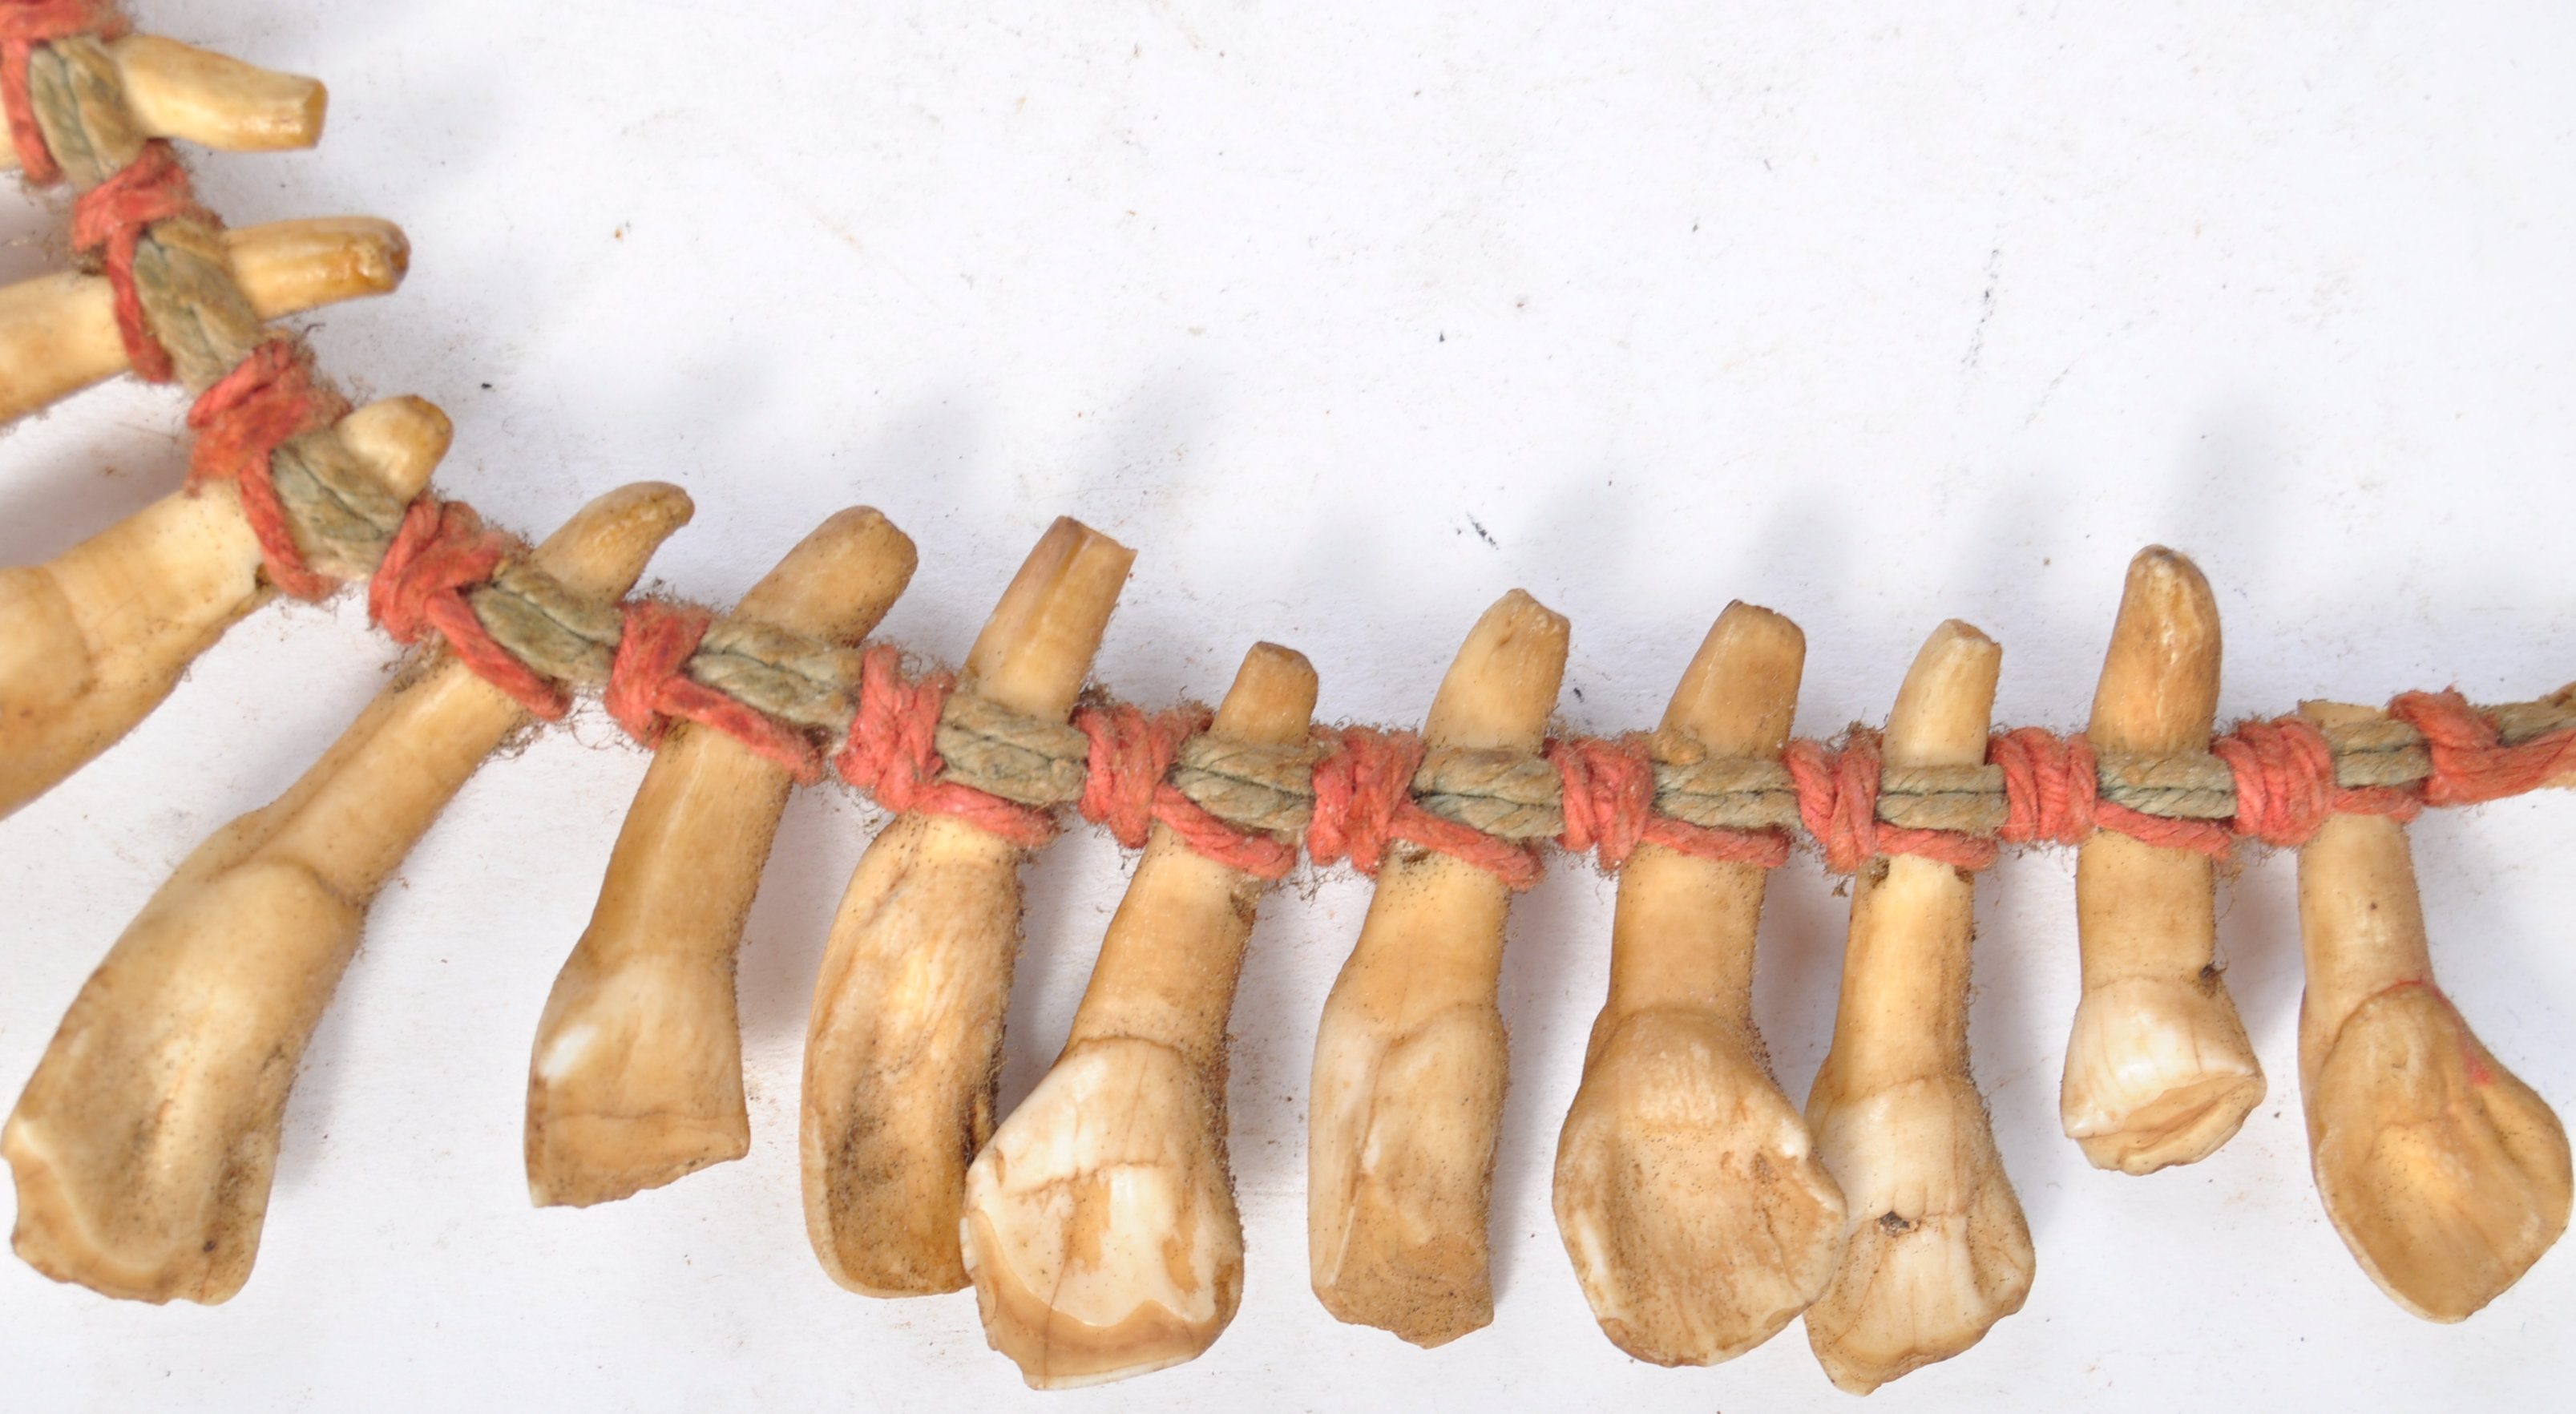 TRIBAL ANTIQUITIES - 19TH CENTURY AFRICAN TOOTH NECKLACE - Bild 4 aus 7